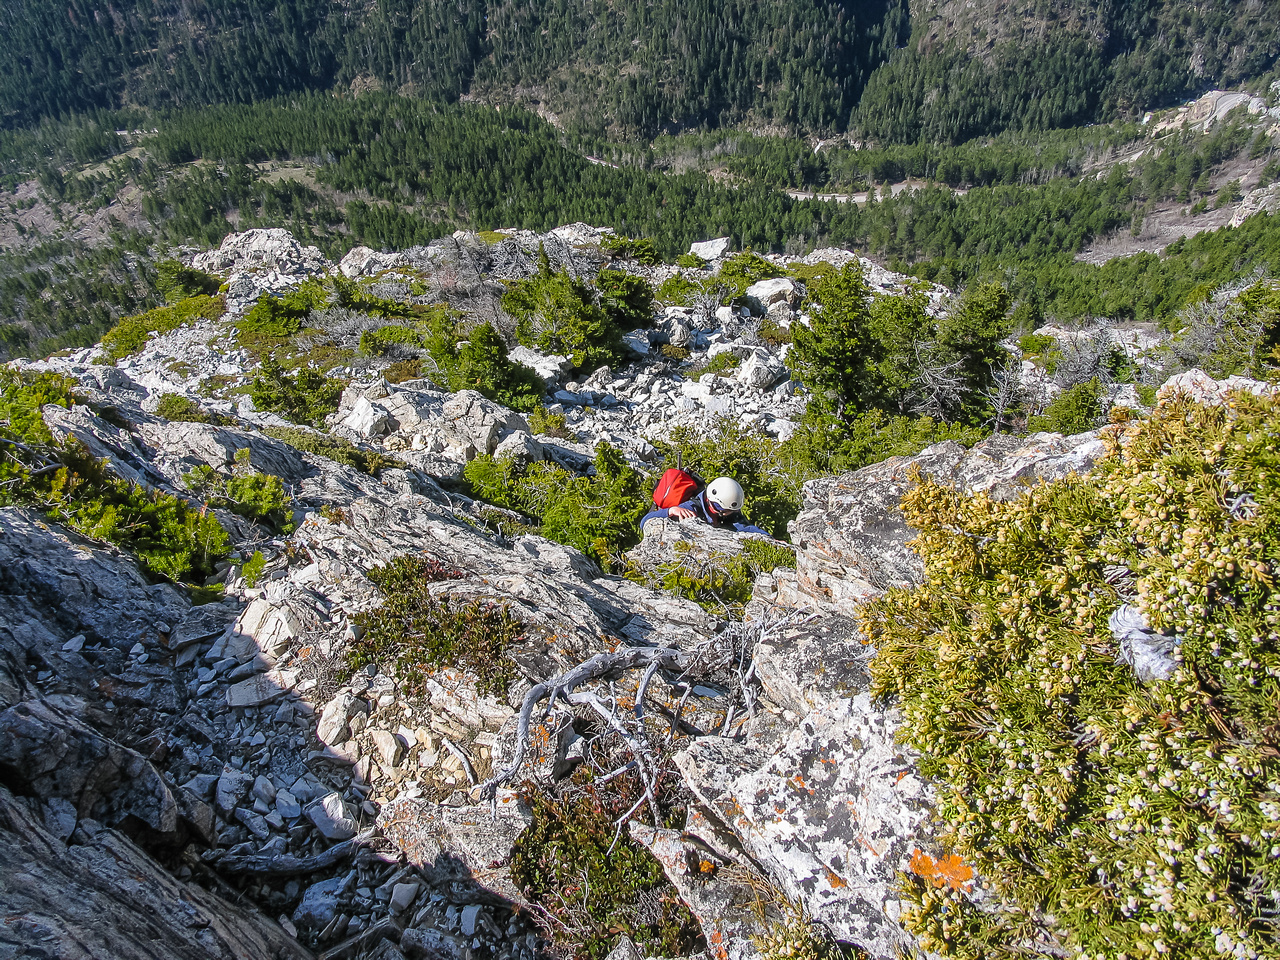 There are numerous small (and fun) cliff bands to surmount on the way up past the Bears Hump to the cockscomb.